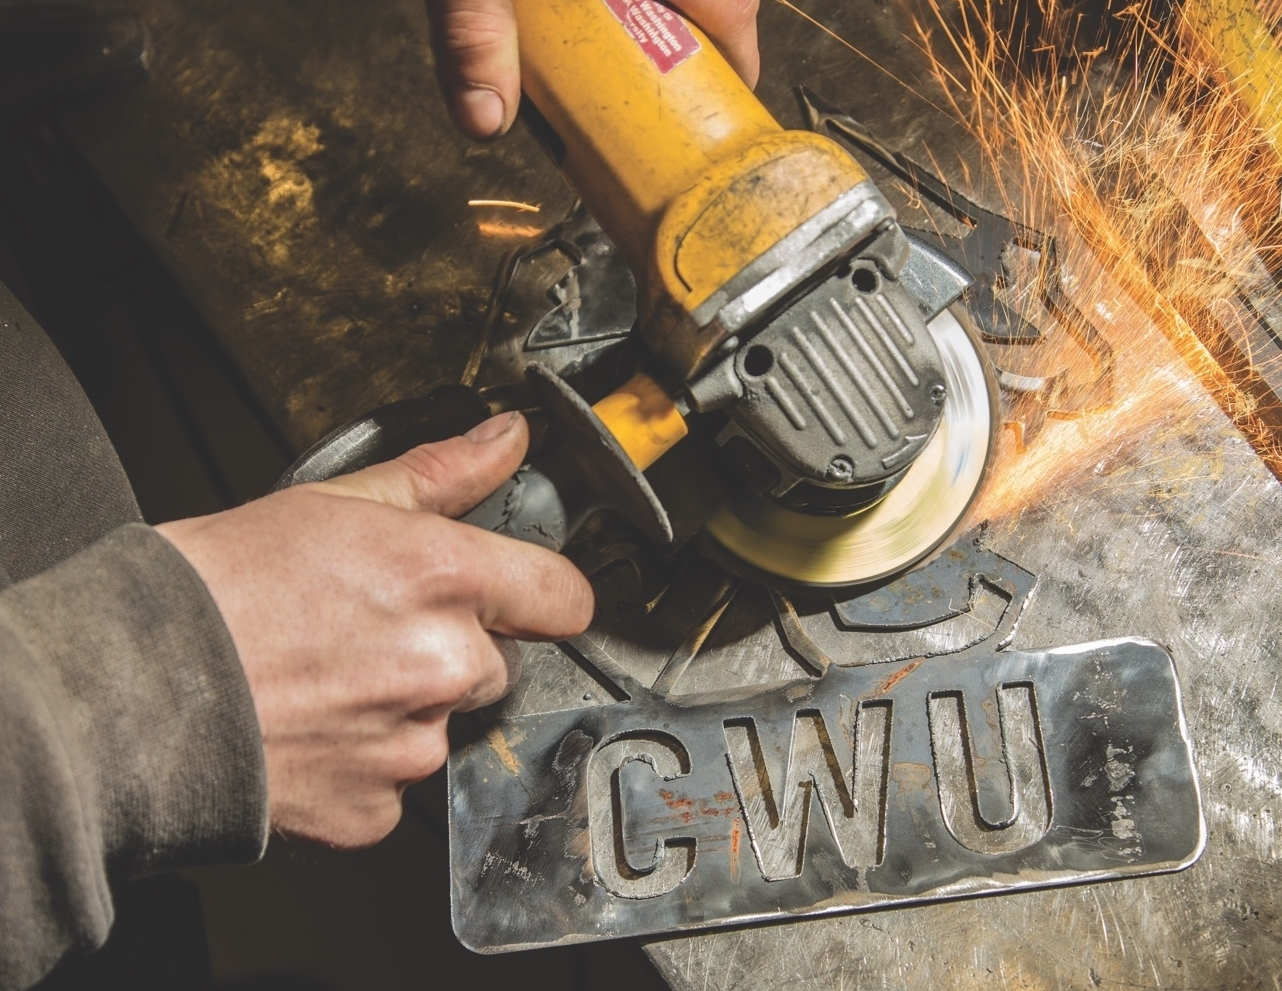 Made at CWU: The Transformative Effect of a Central Education